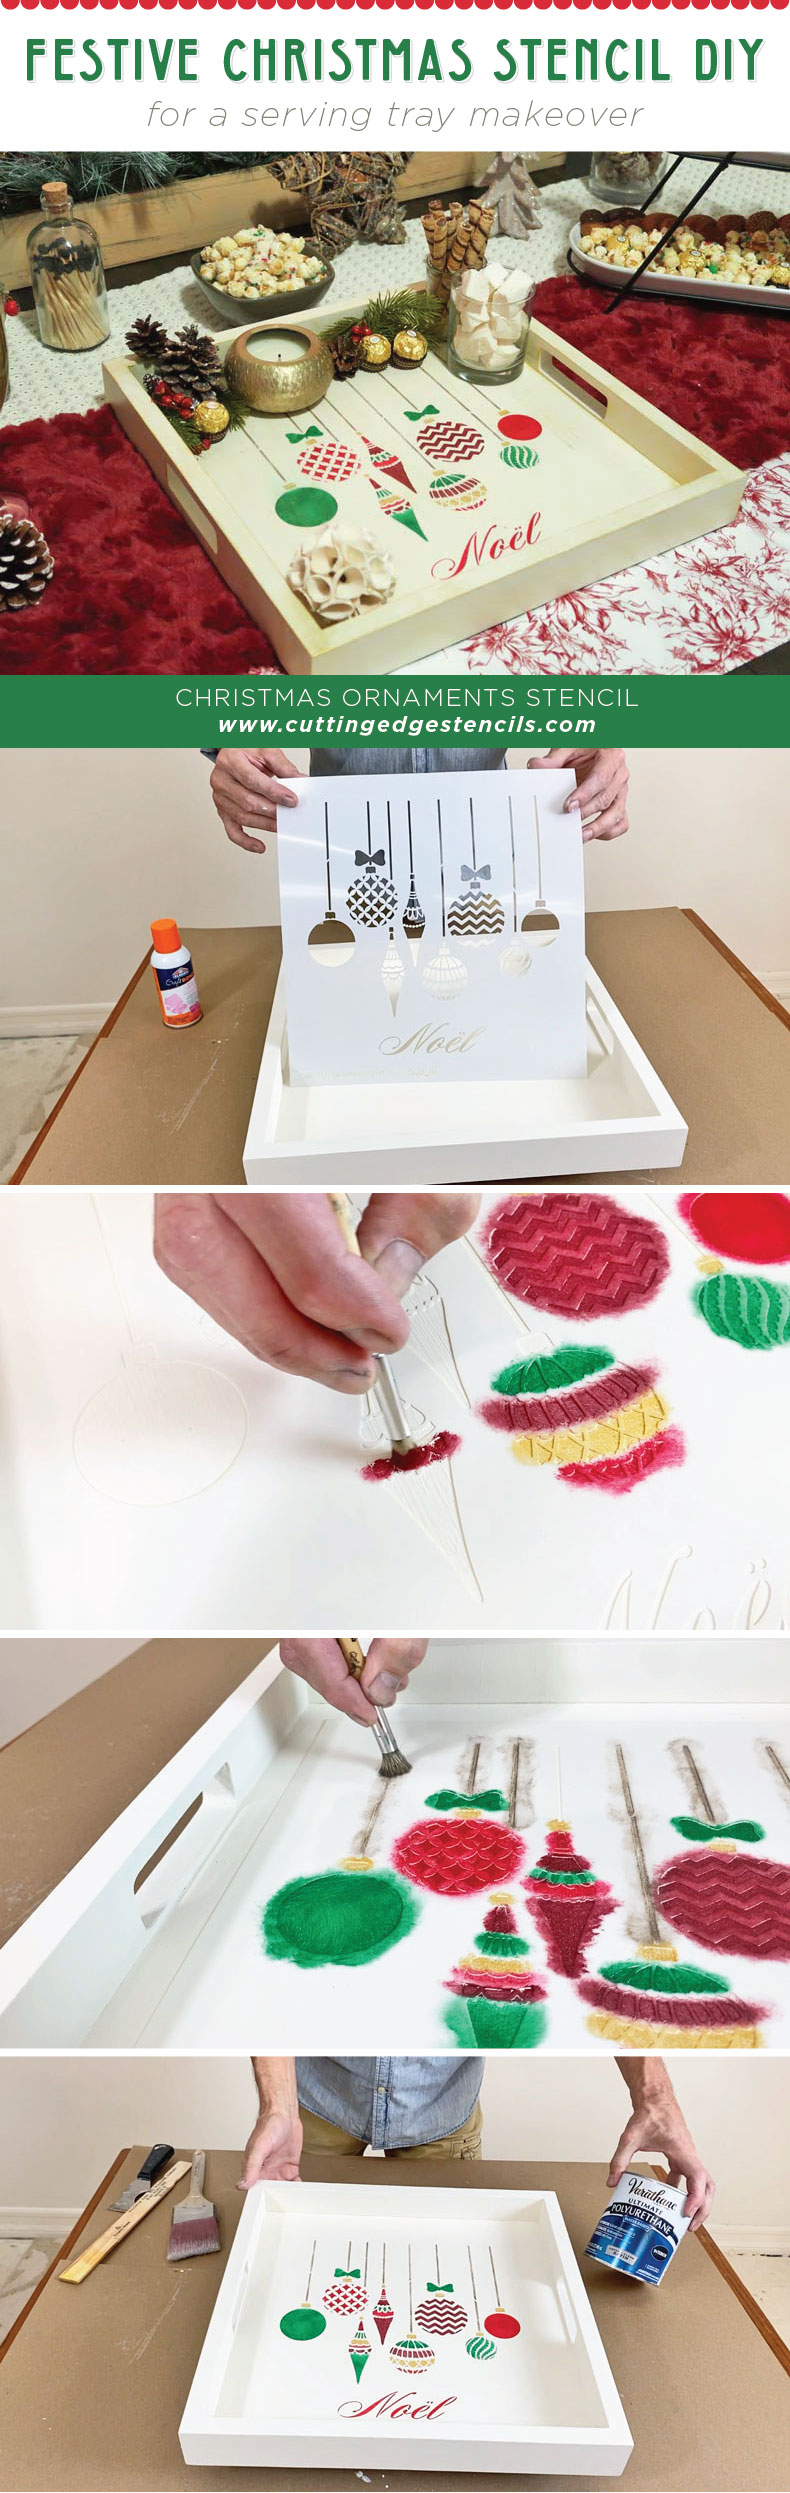 christmas stencil serving tray diy project